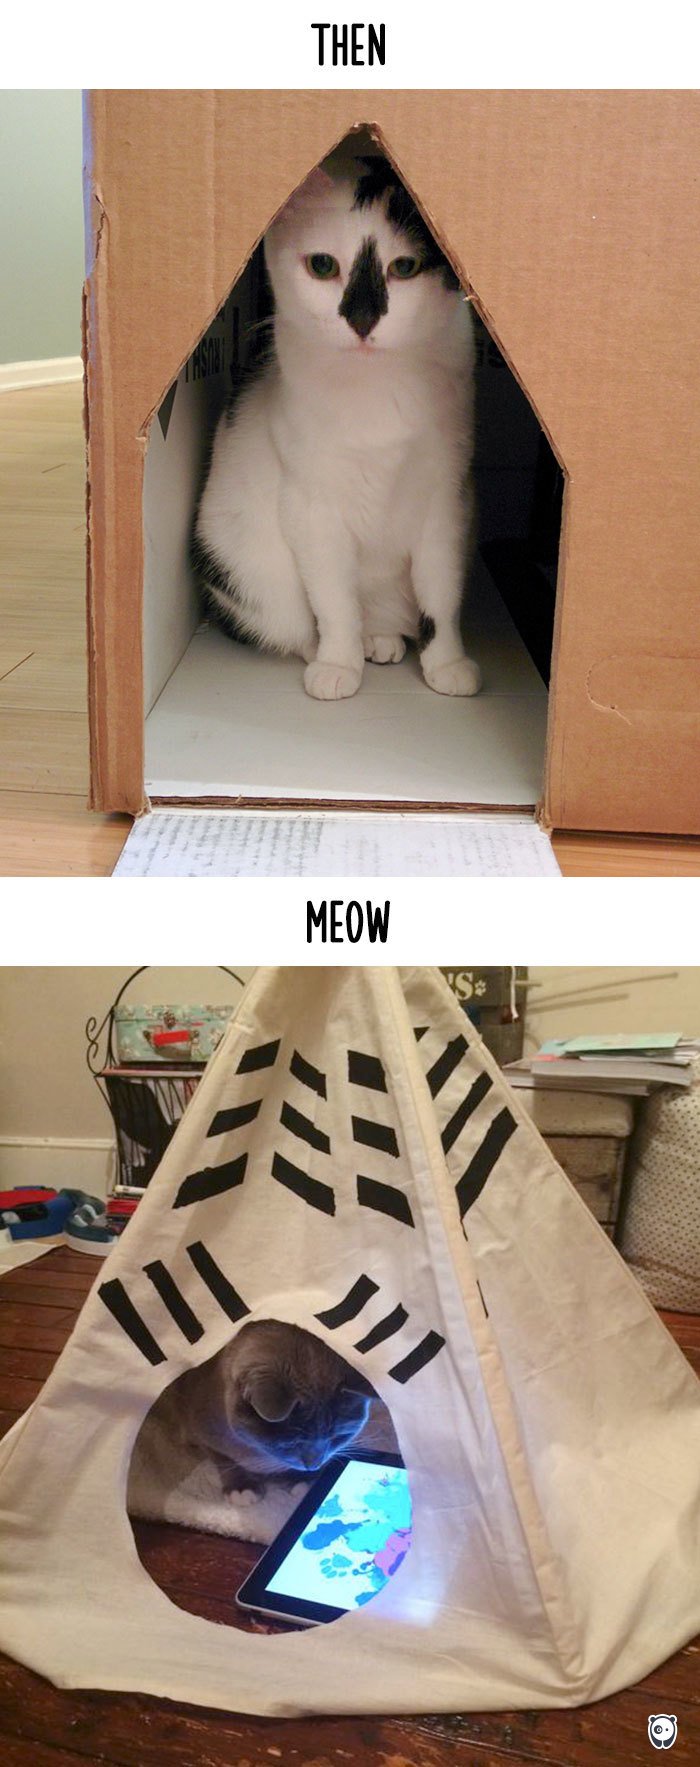 how-technology-has-changed-cats-lives-4